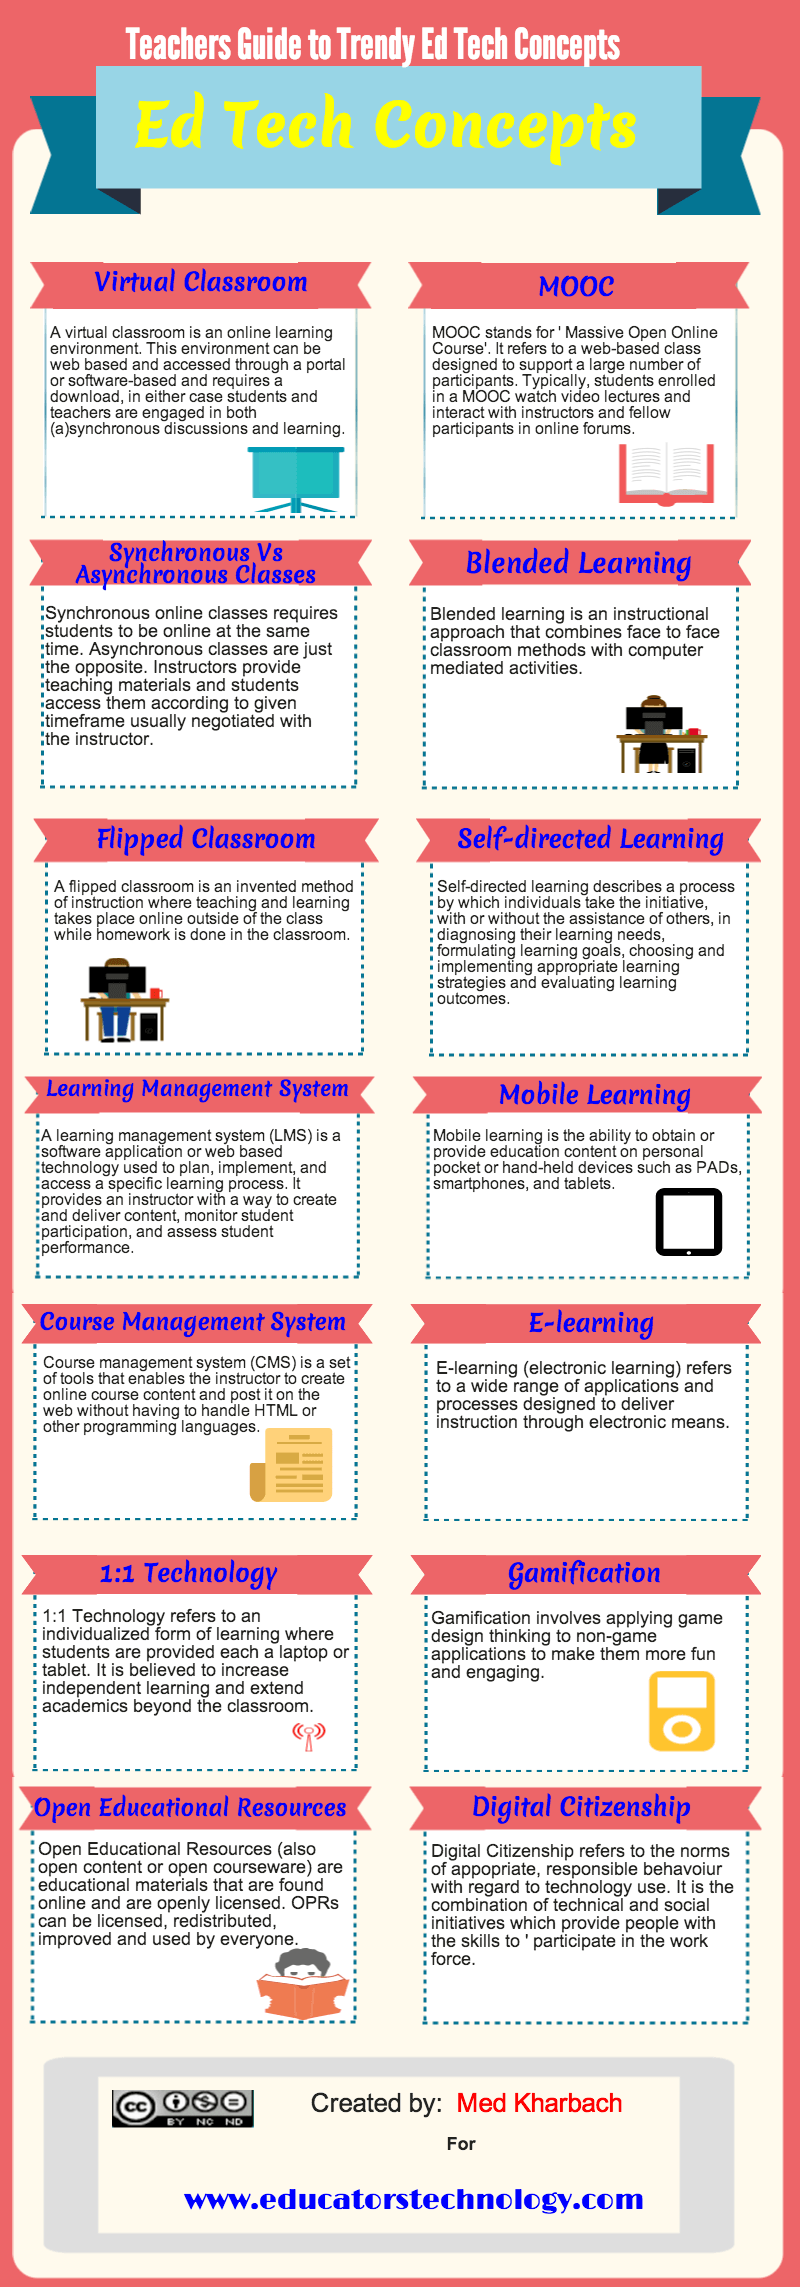 Teachers-Guide-to-Trendy-EdTech-Concepts-Infographic